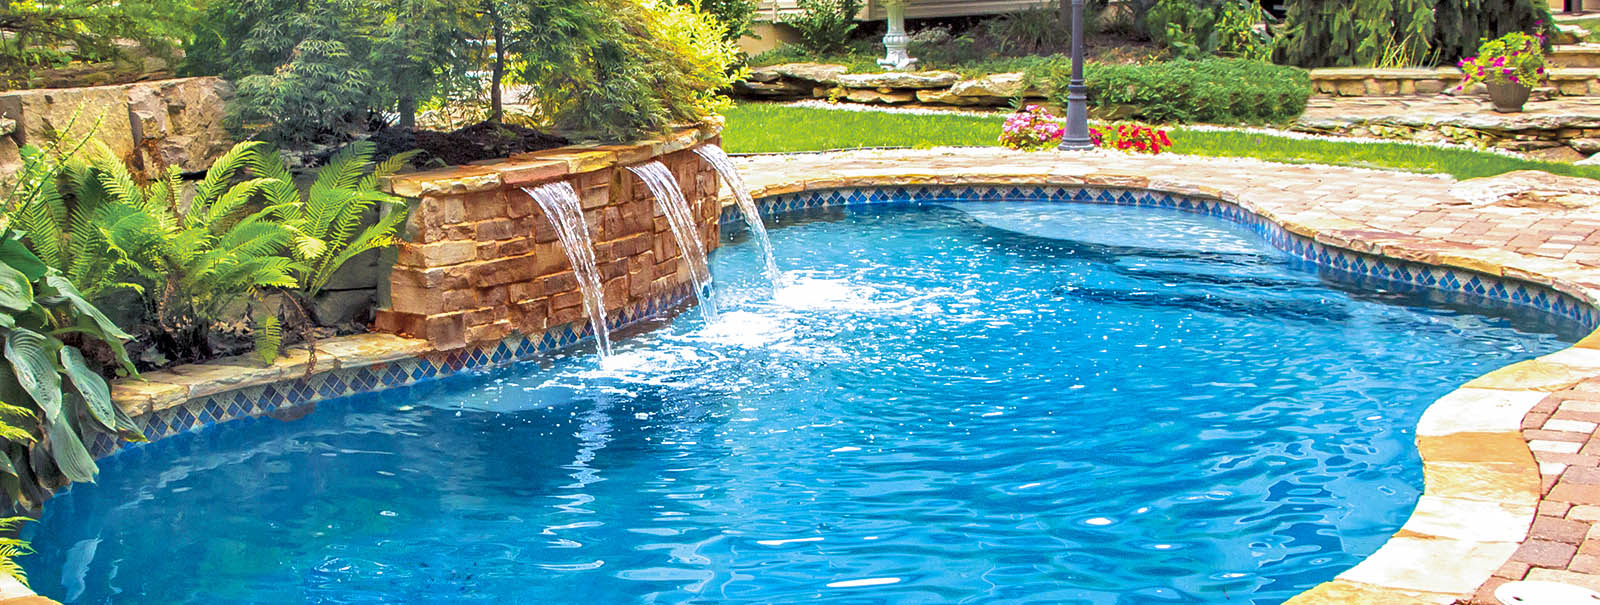 St. Louis Custom Swimming Pool Builders│Blue Haven Pools